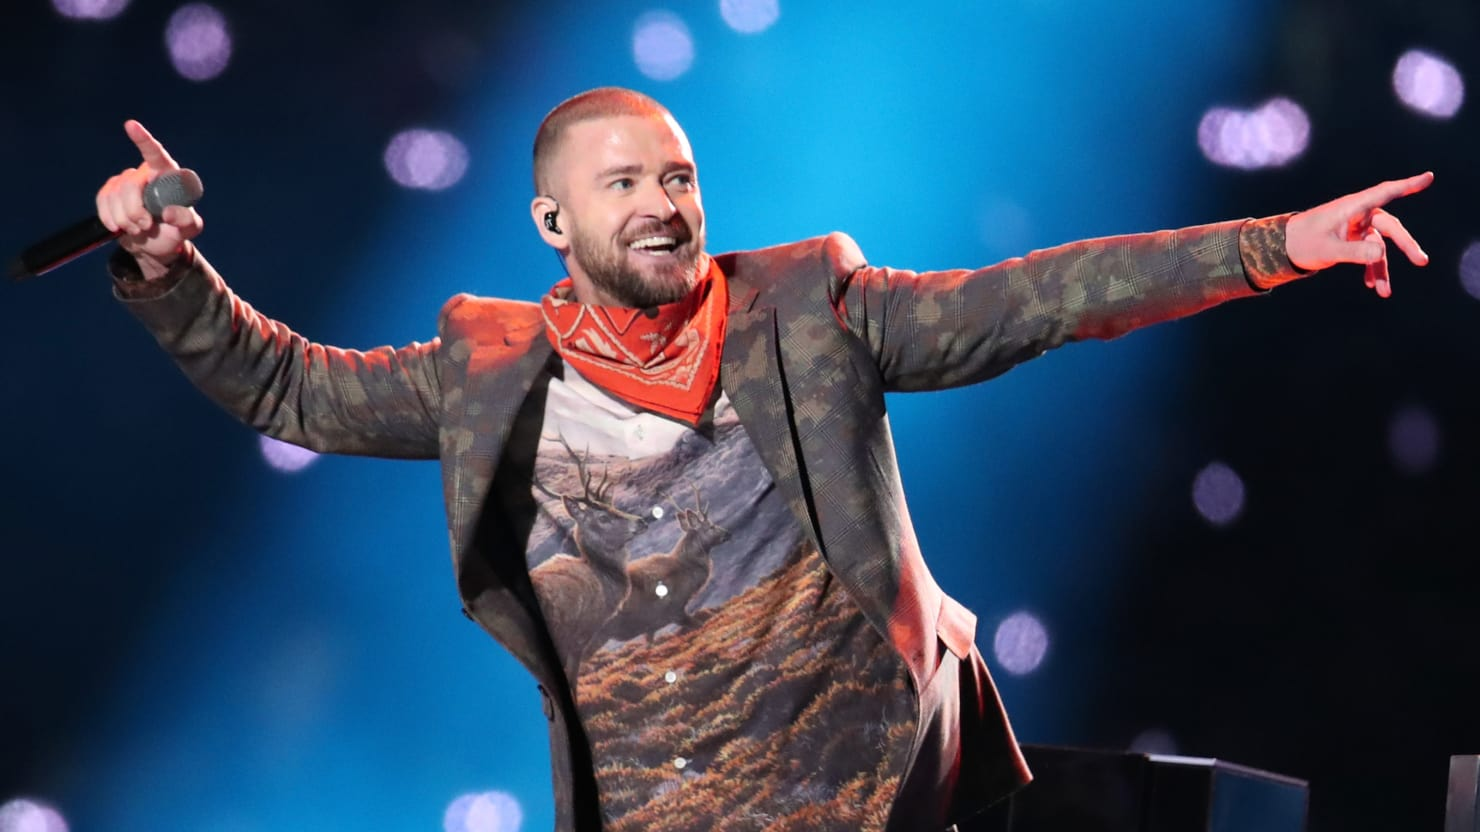 Justin Timberlake performing at last year's Super Bowl (@thedailybeast)